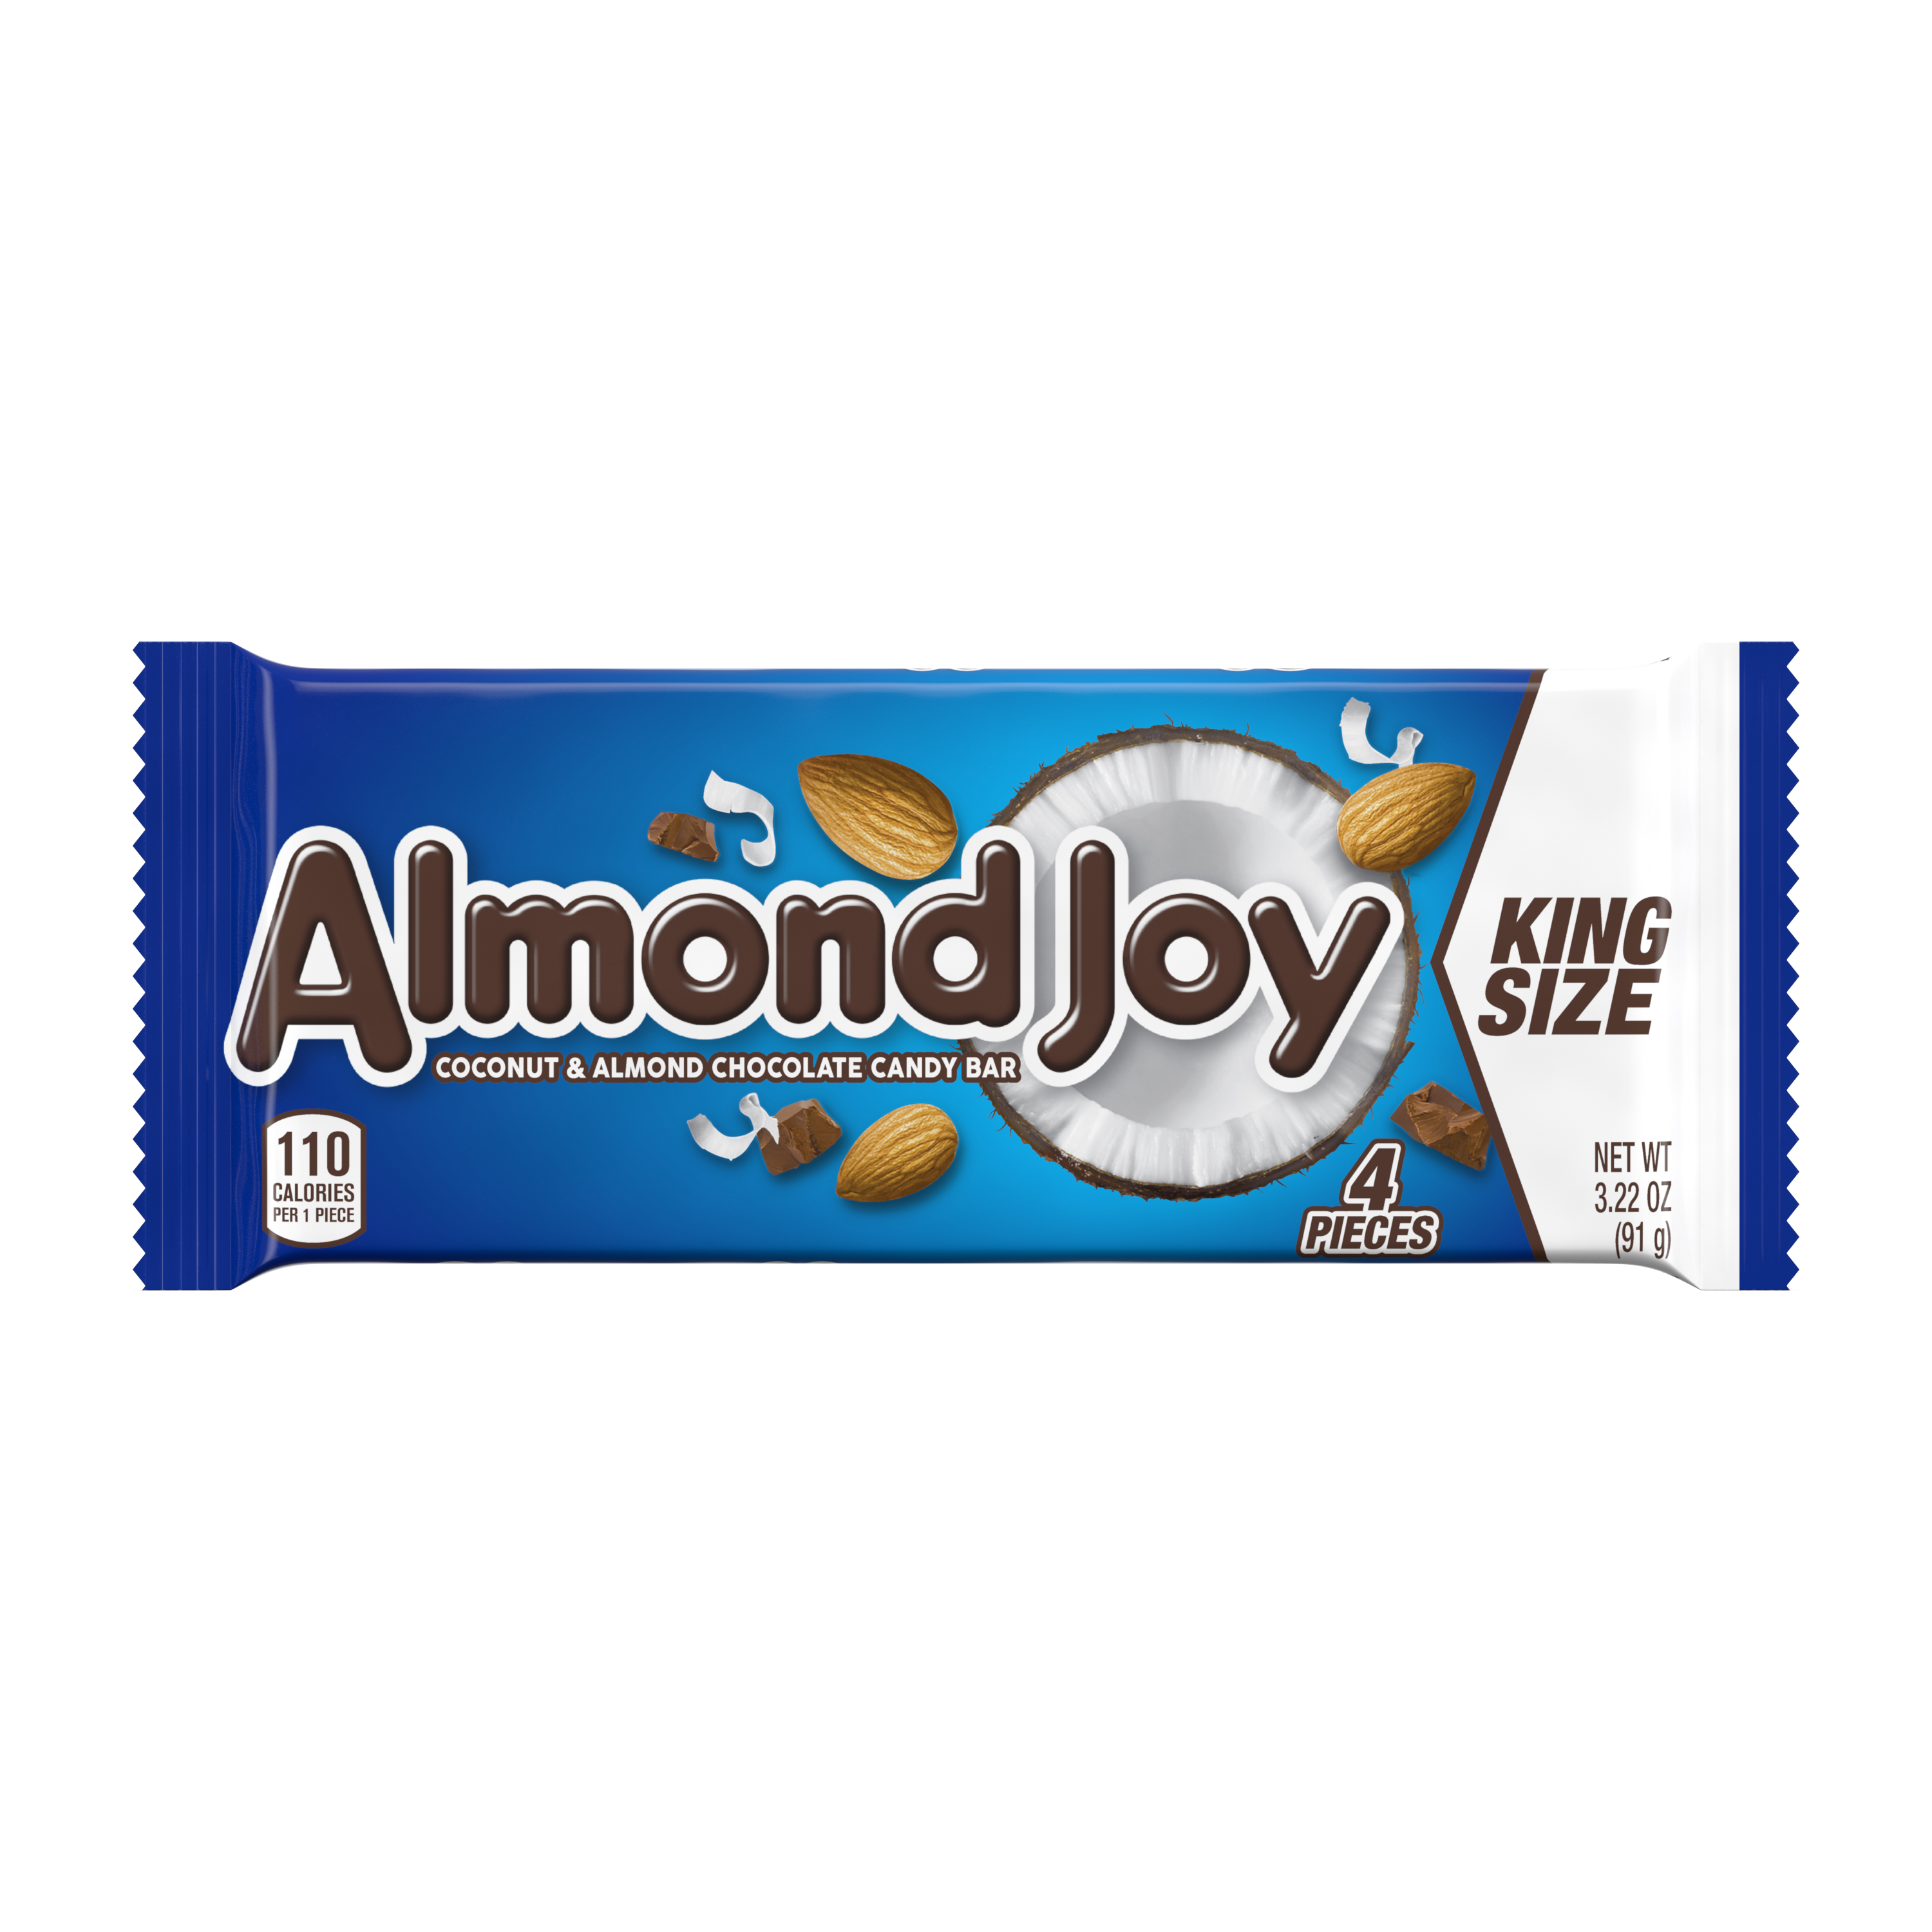 ALMOND JOY Coconut and Almond Chocolate King Size Candy Bar, 3.22 oz - Front of Package